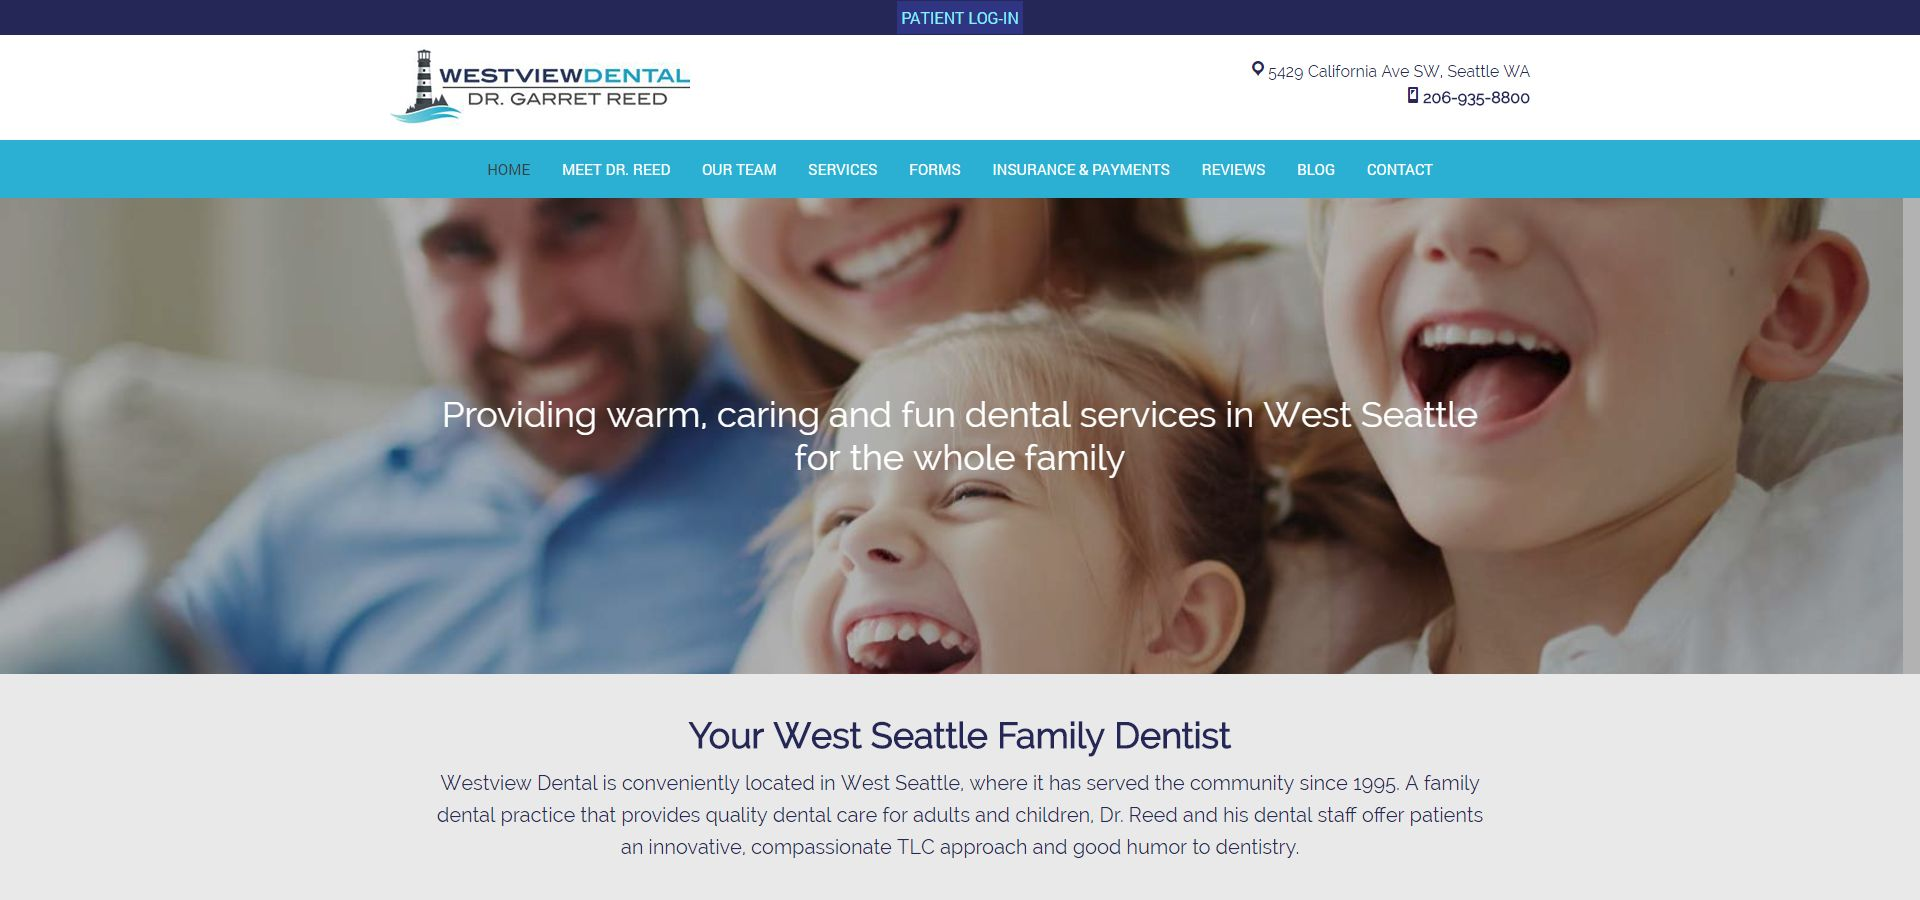 Westview Dental